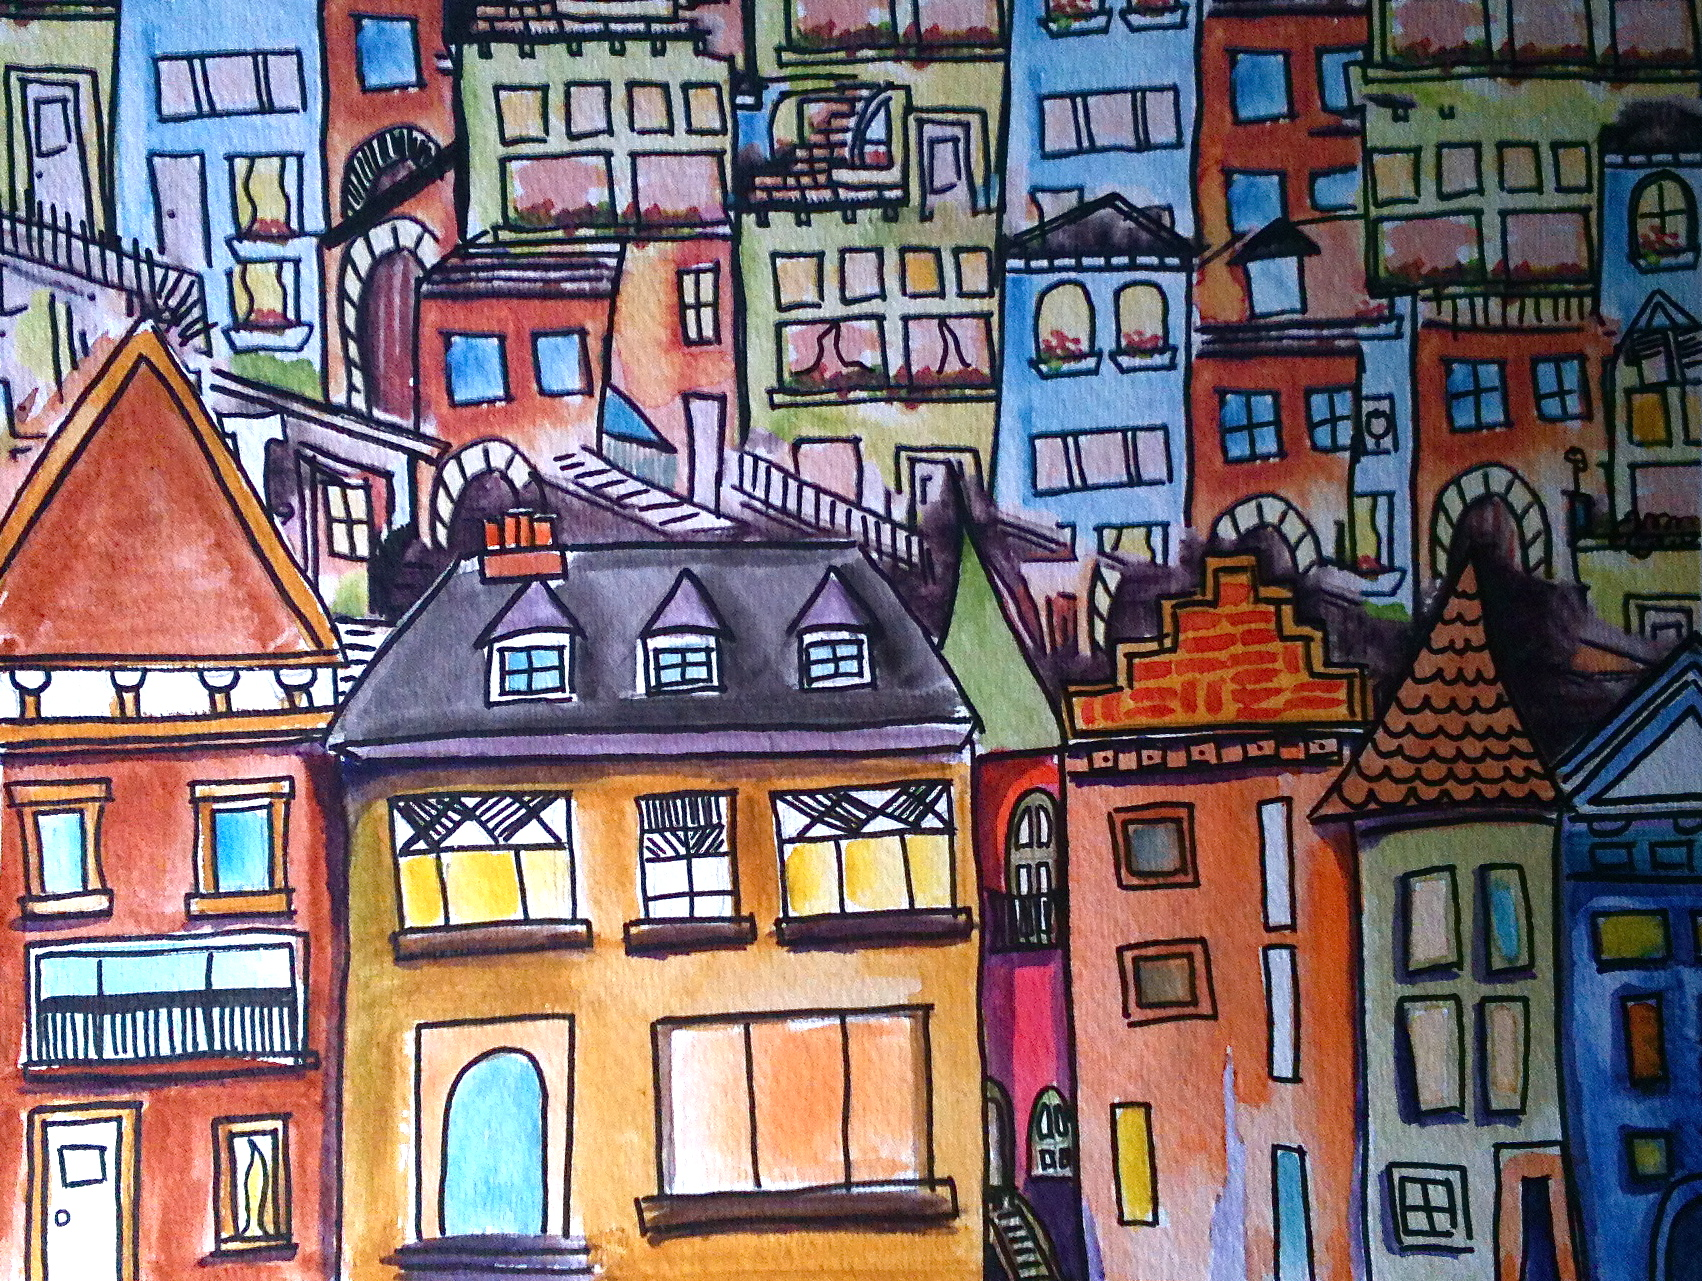 Houses Illustration print $50